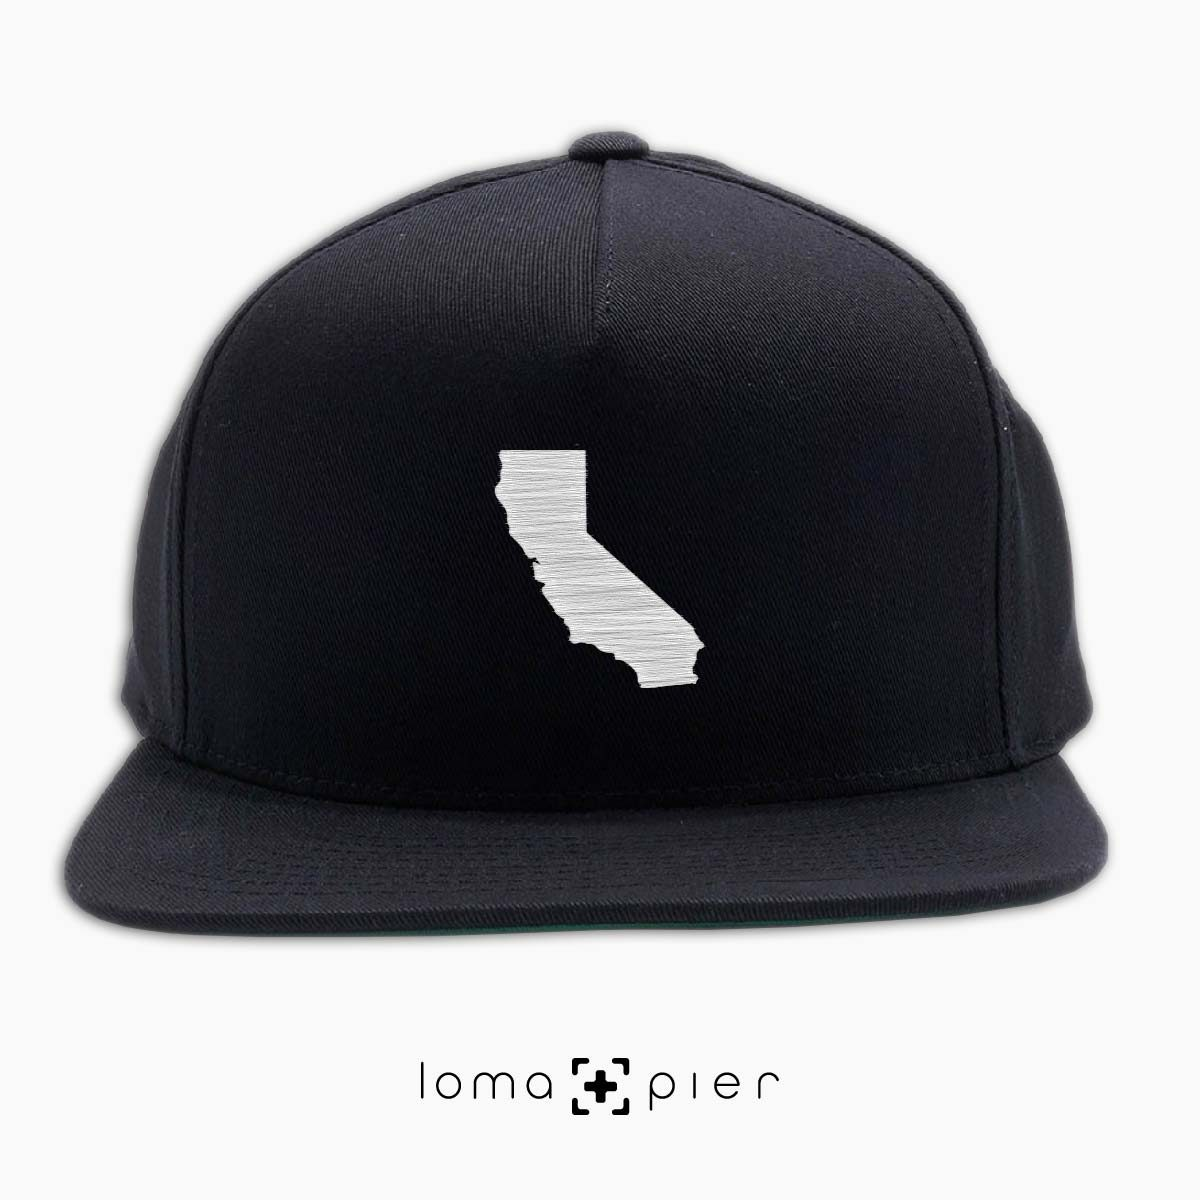 CALIFORNIA silhouette icon embroidered on a black classic snapback hat by loma+pier hat store